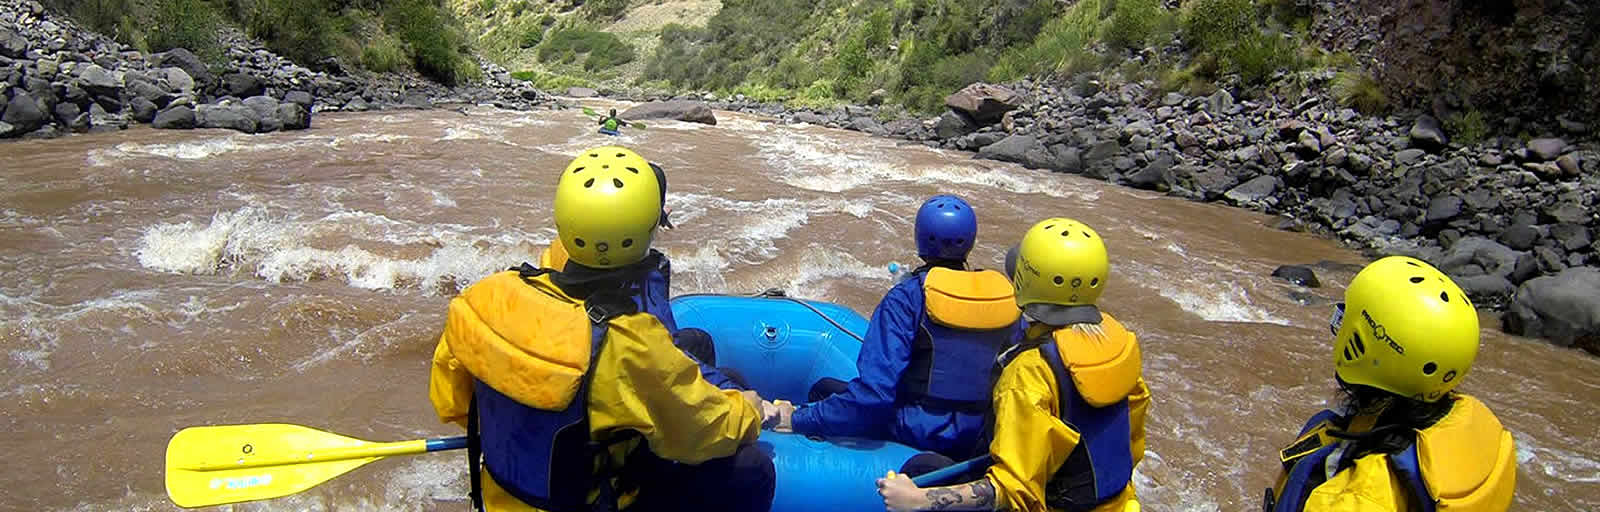 cusco rafting